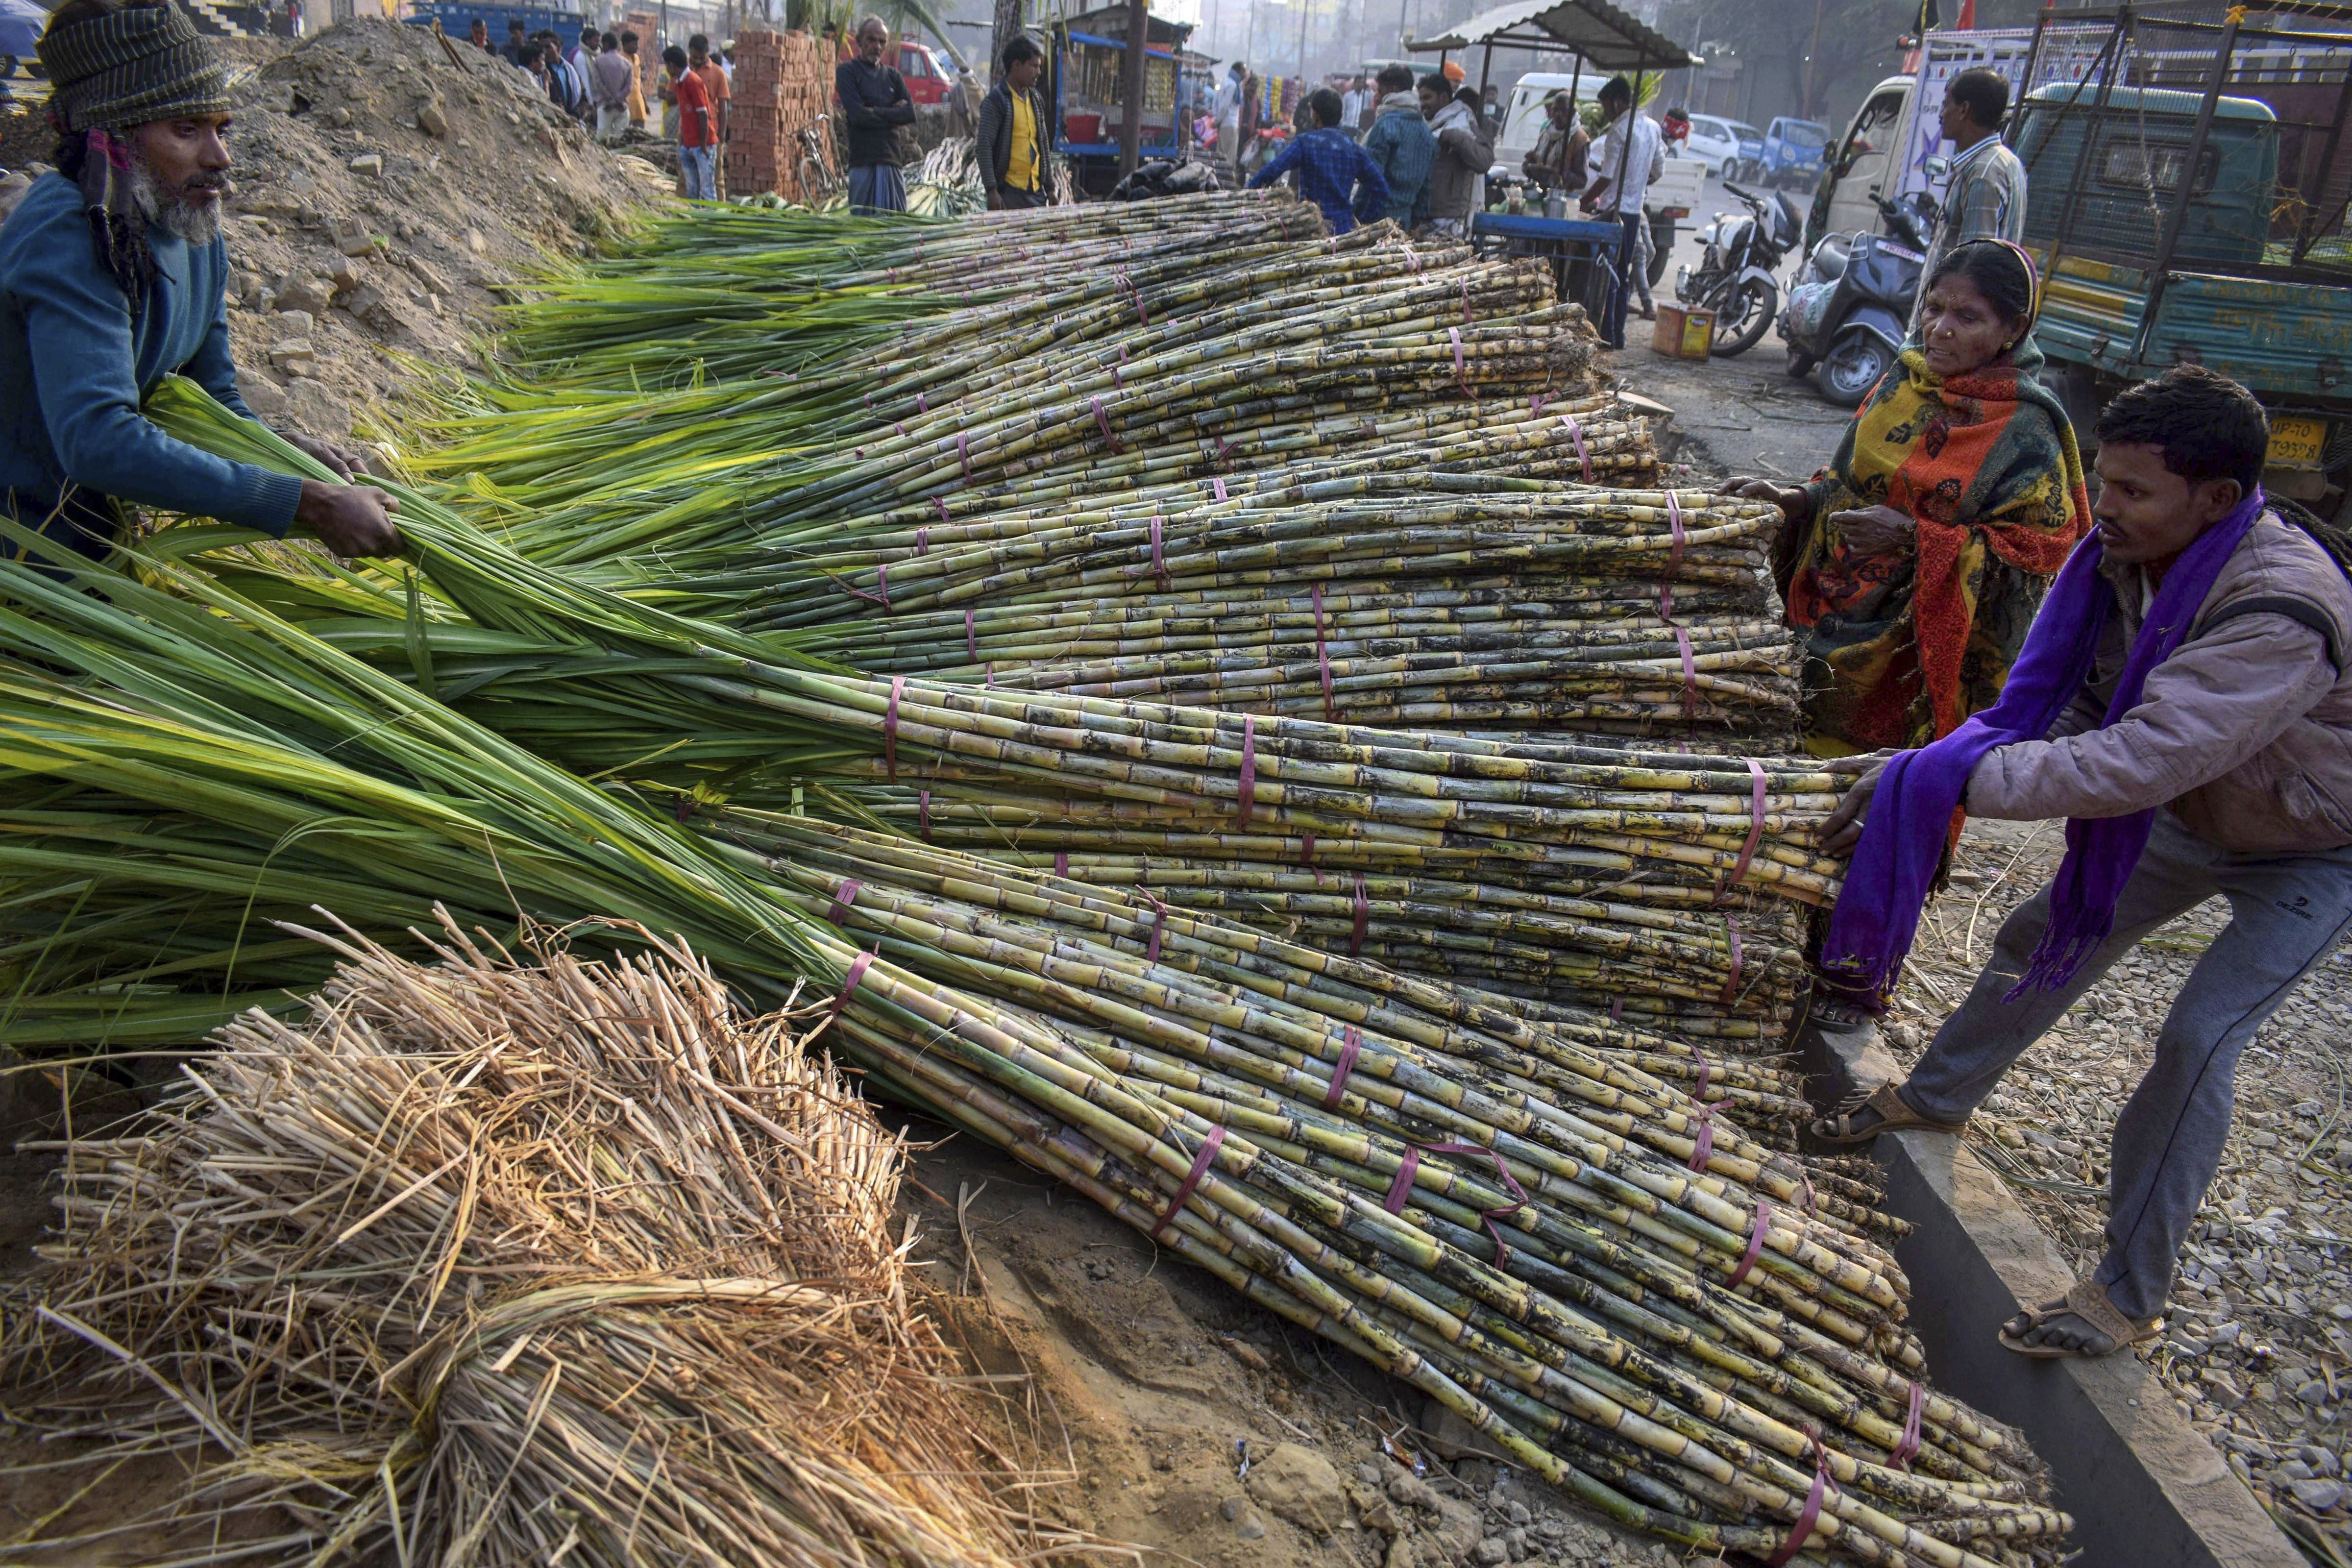 Labourers unload bunches of sugarcanes from a truck for selling during Chhath Puja festival at Mundera Mandi, in Allahabad - PTI